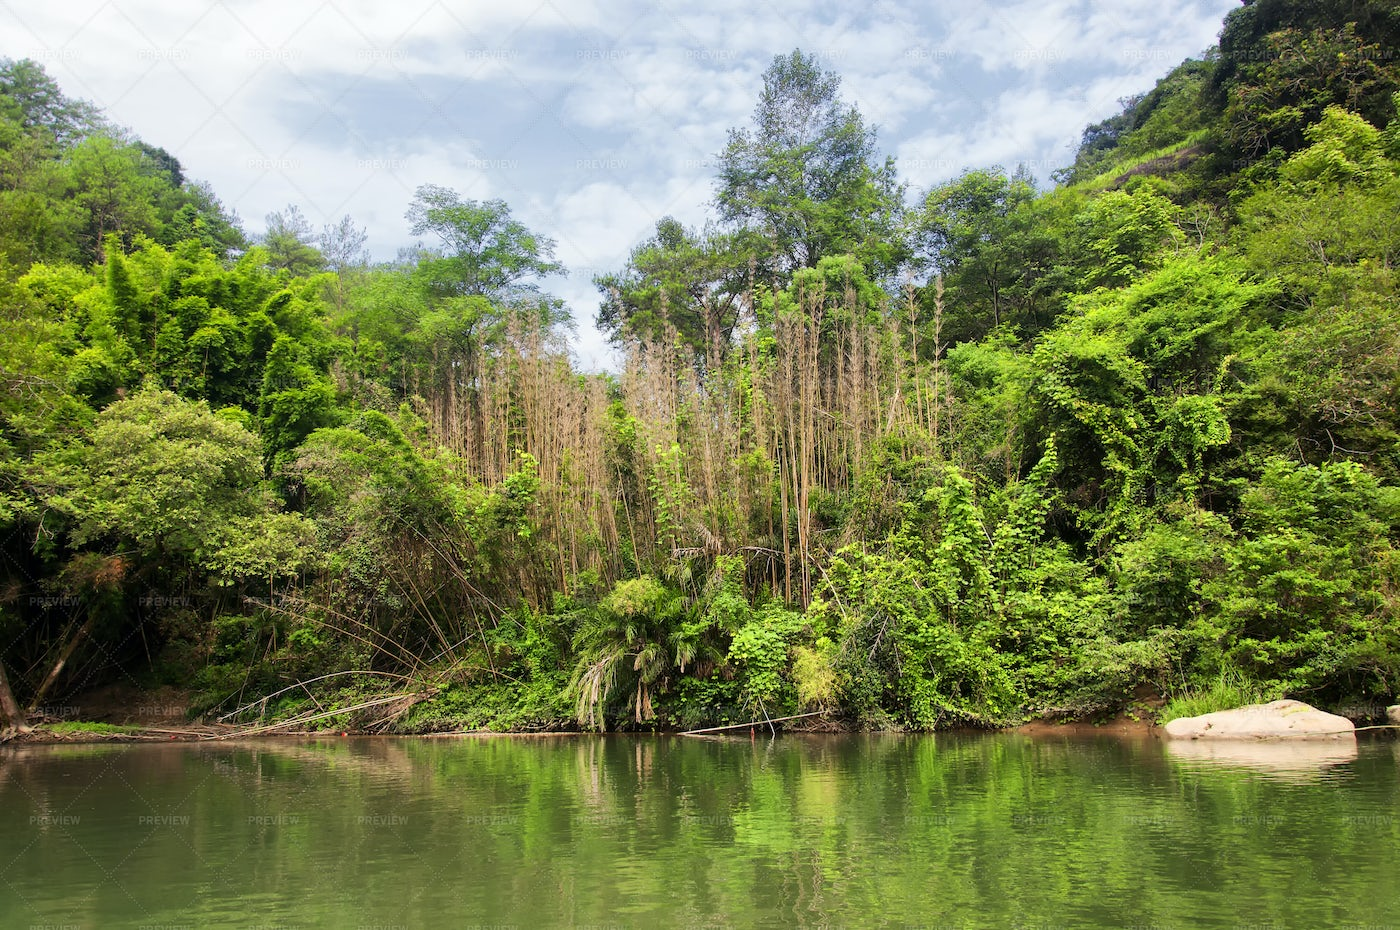 River In Forest: Stock Photos